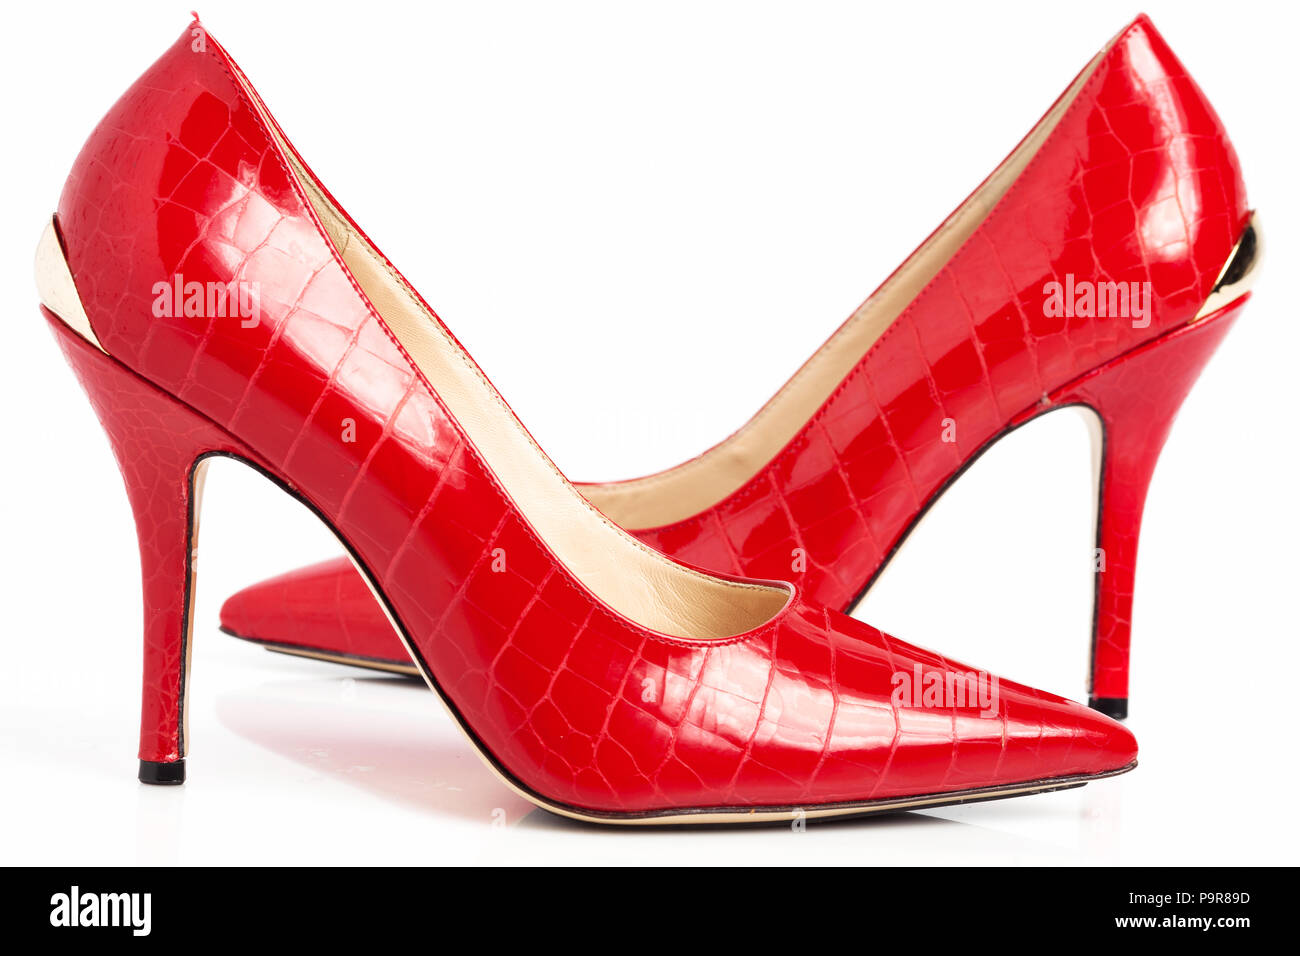 2851fd29454 High Heel Shoes Stock Photos & High Heel Shoes Stock Images - Alamy